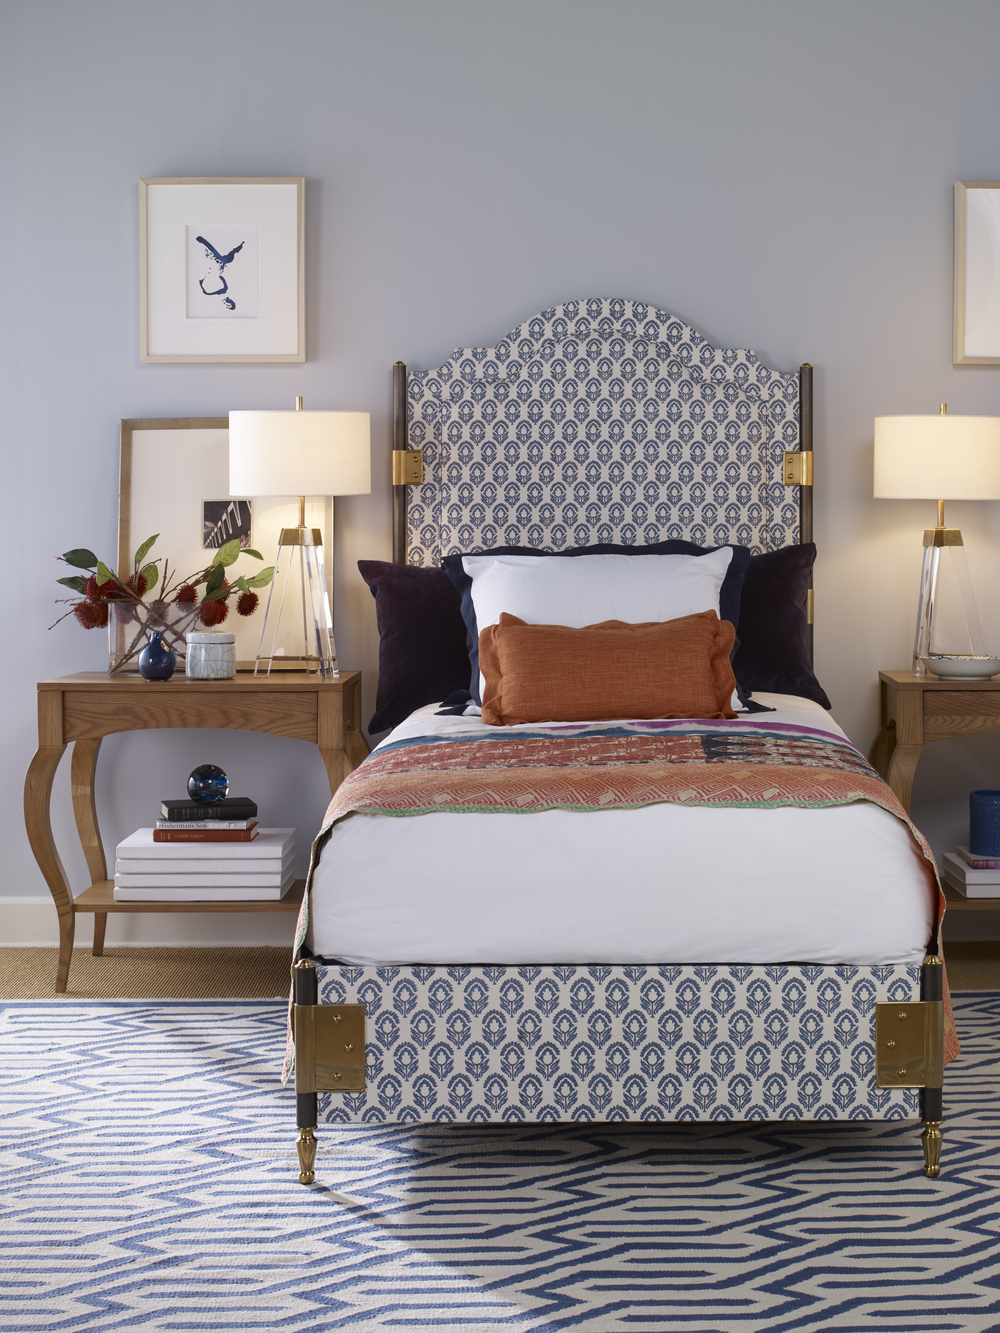 Century Furniture - Townsend Twin Upholstered Bed